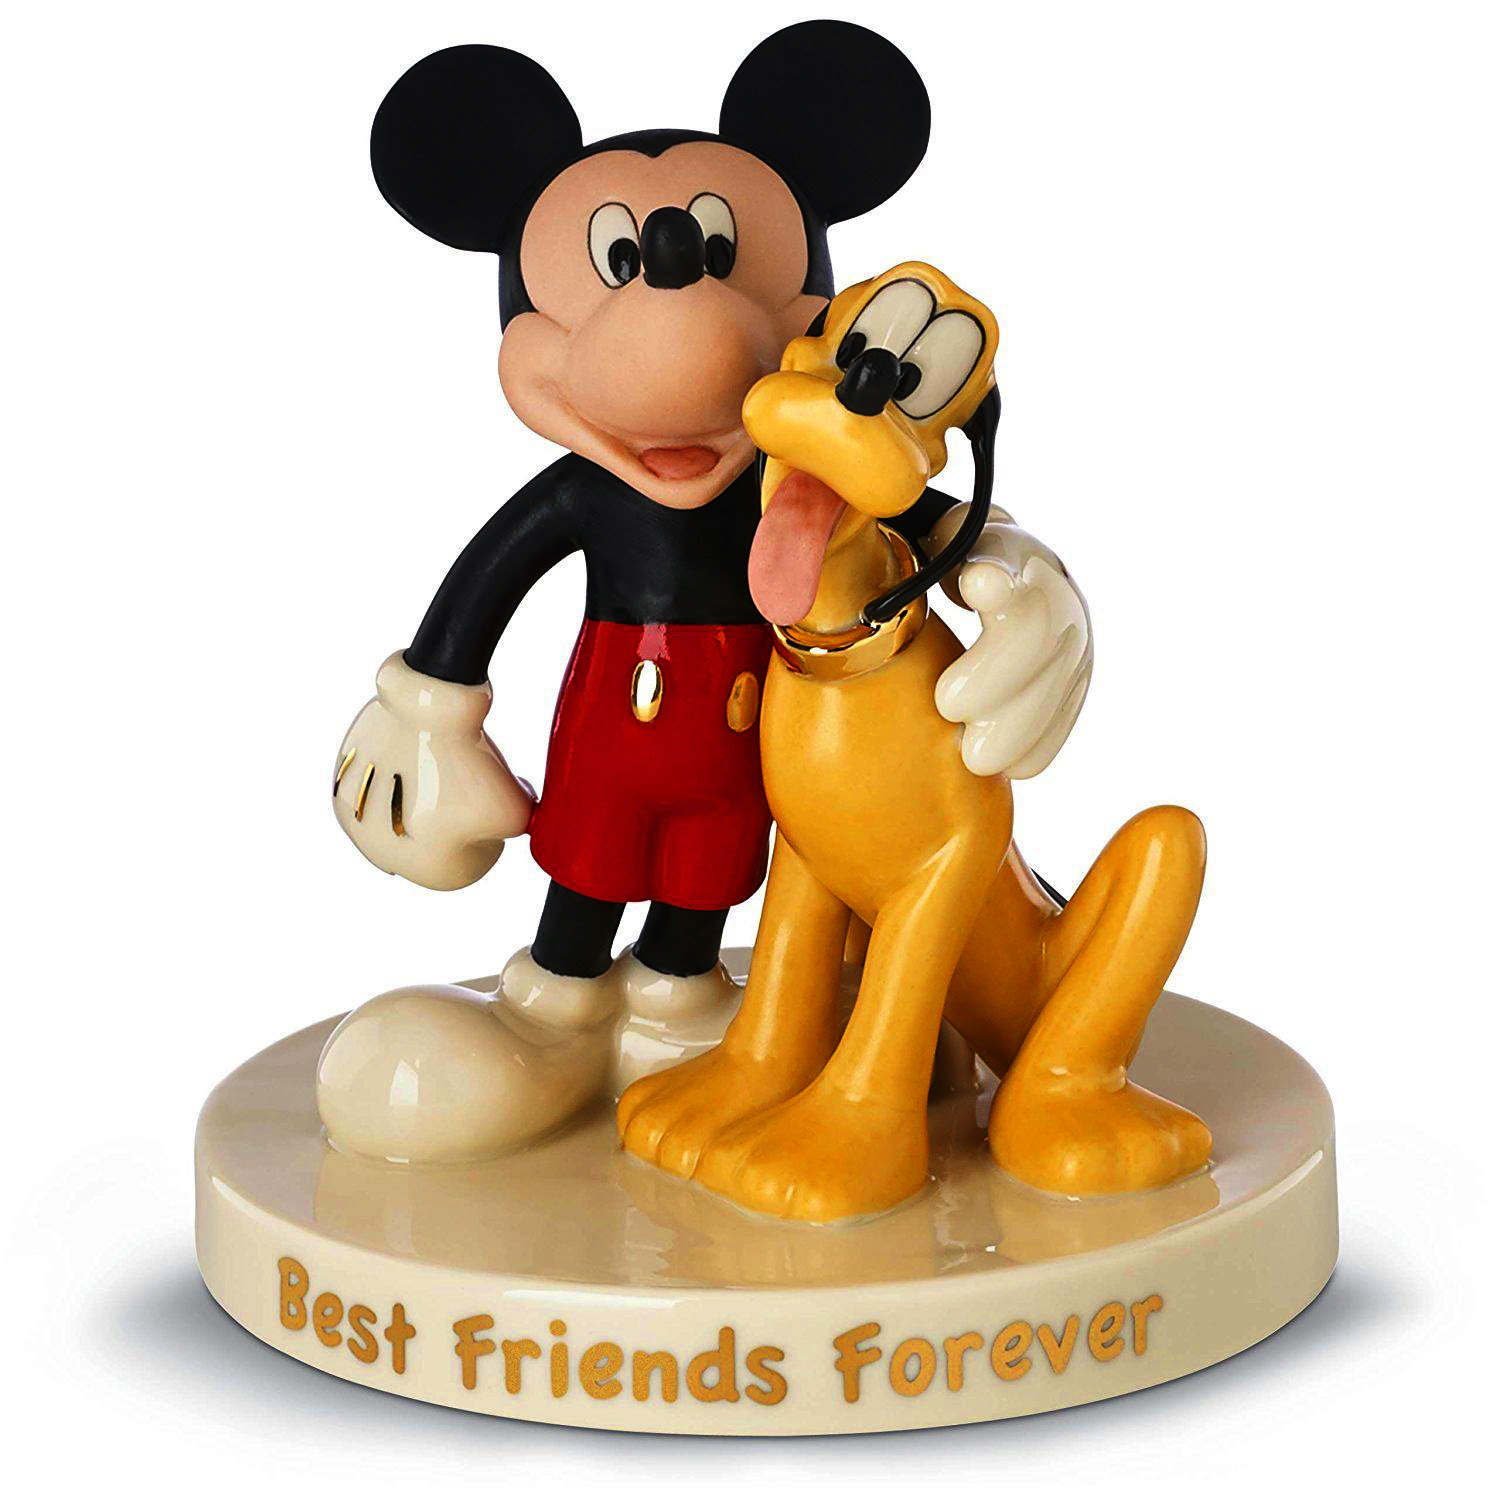 Mickey Mouse and Pluto best friends forever Lenox fine china